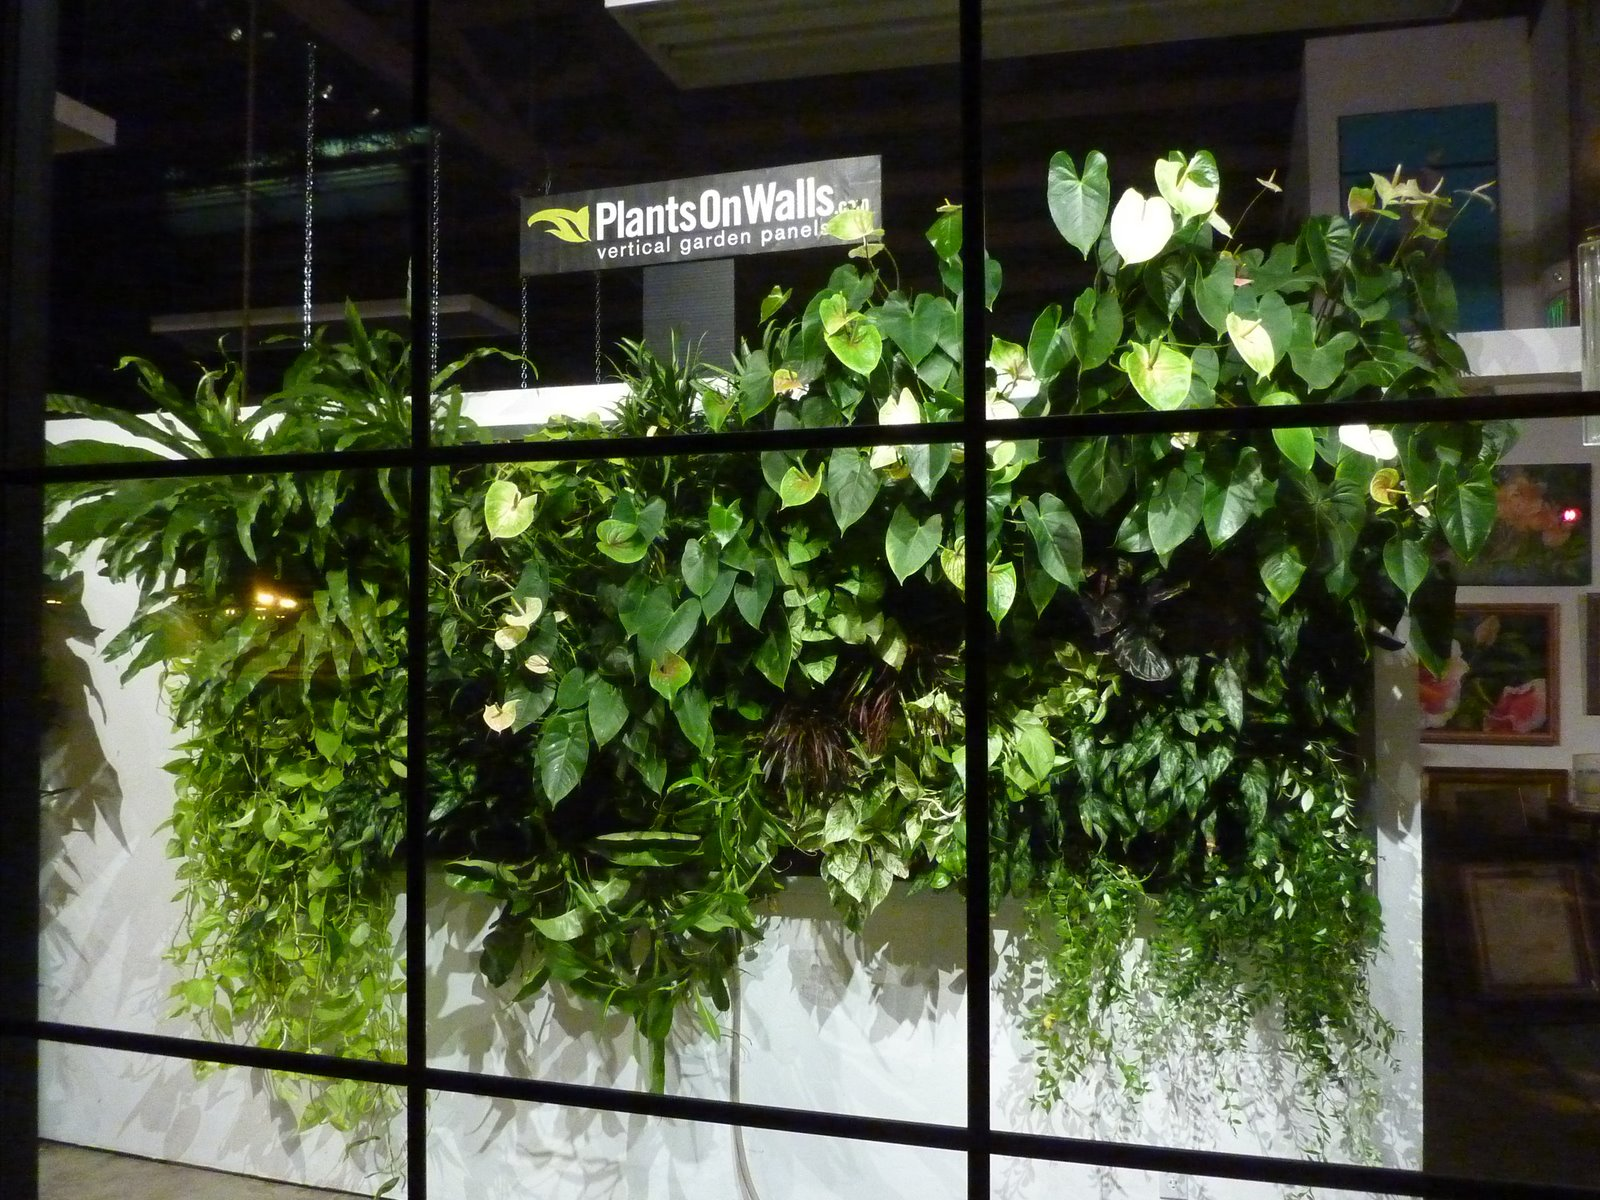 Plants on walls vertical garden systems plantsonwalls for Vertical garden wall systems